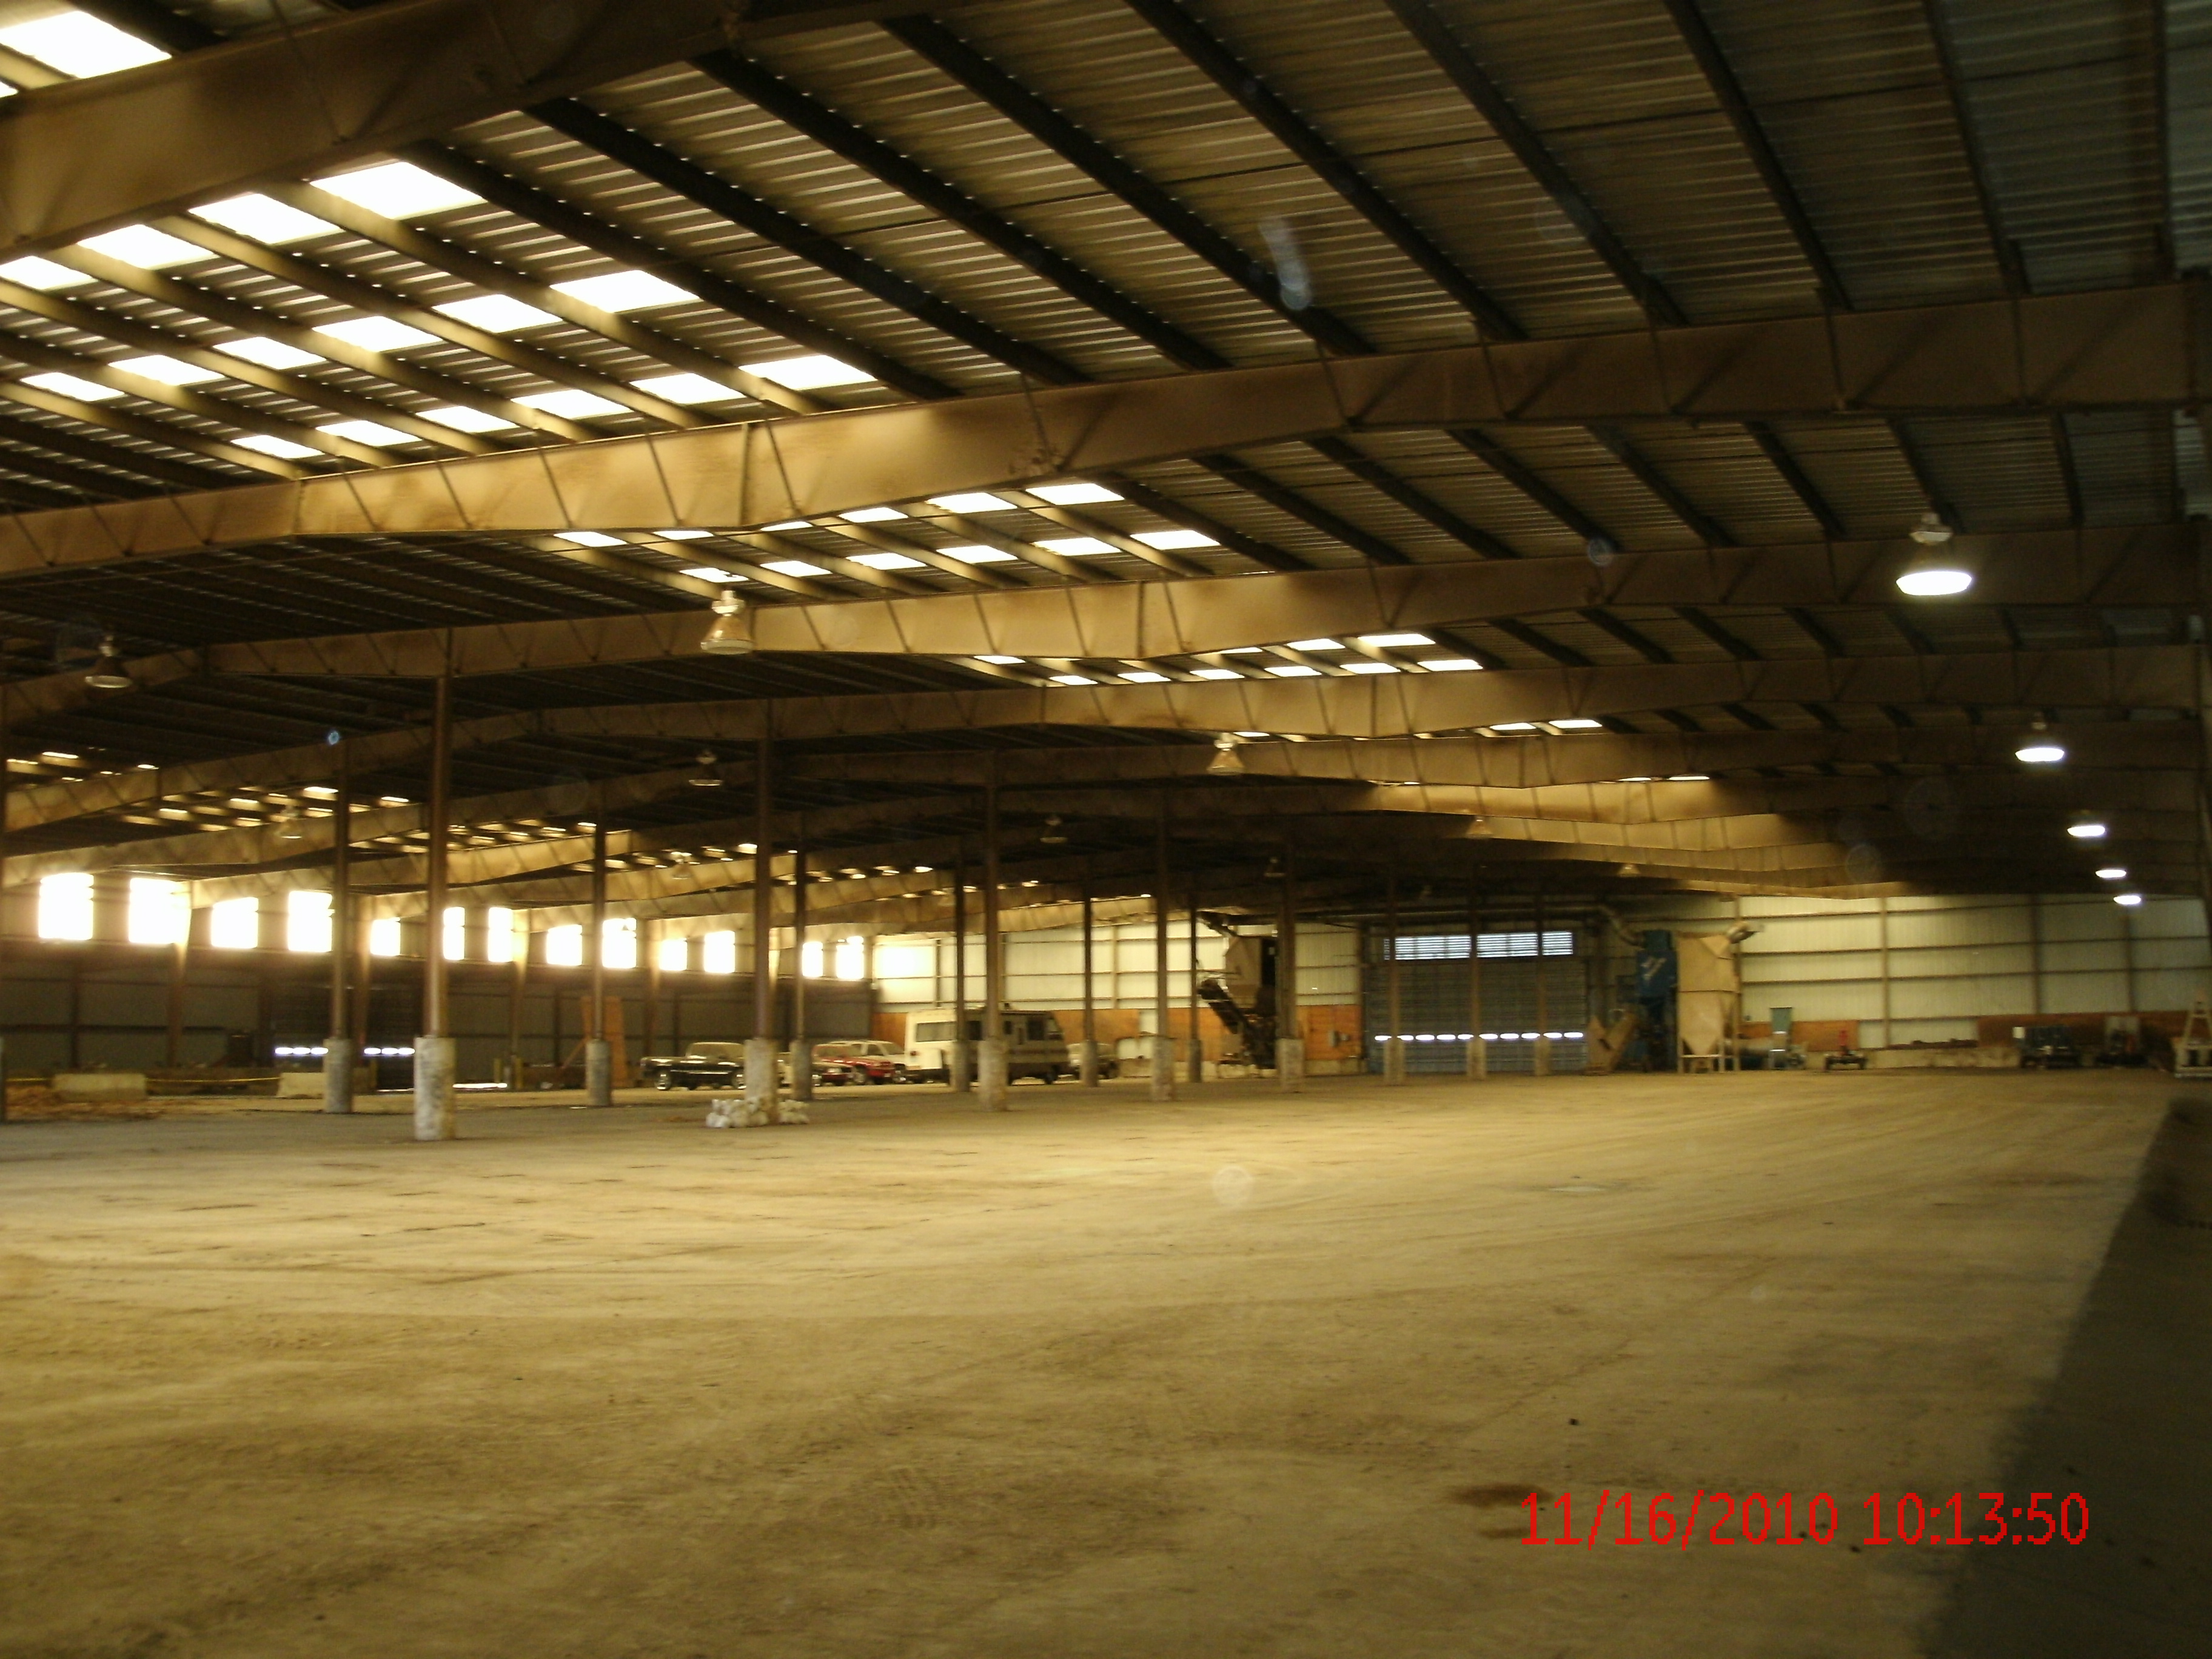 Pressure Washing The Walls And Ceilings Of An 80,000sf Warehouse